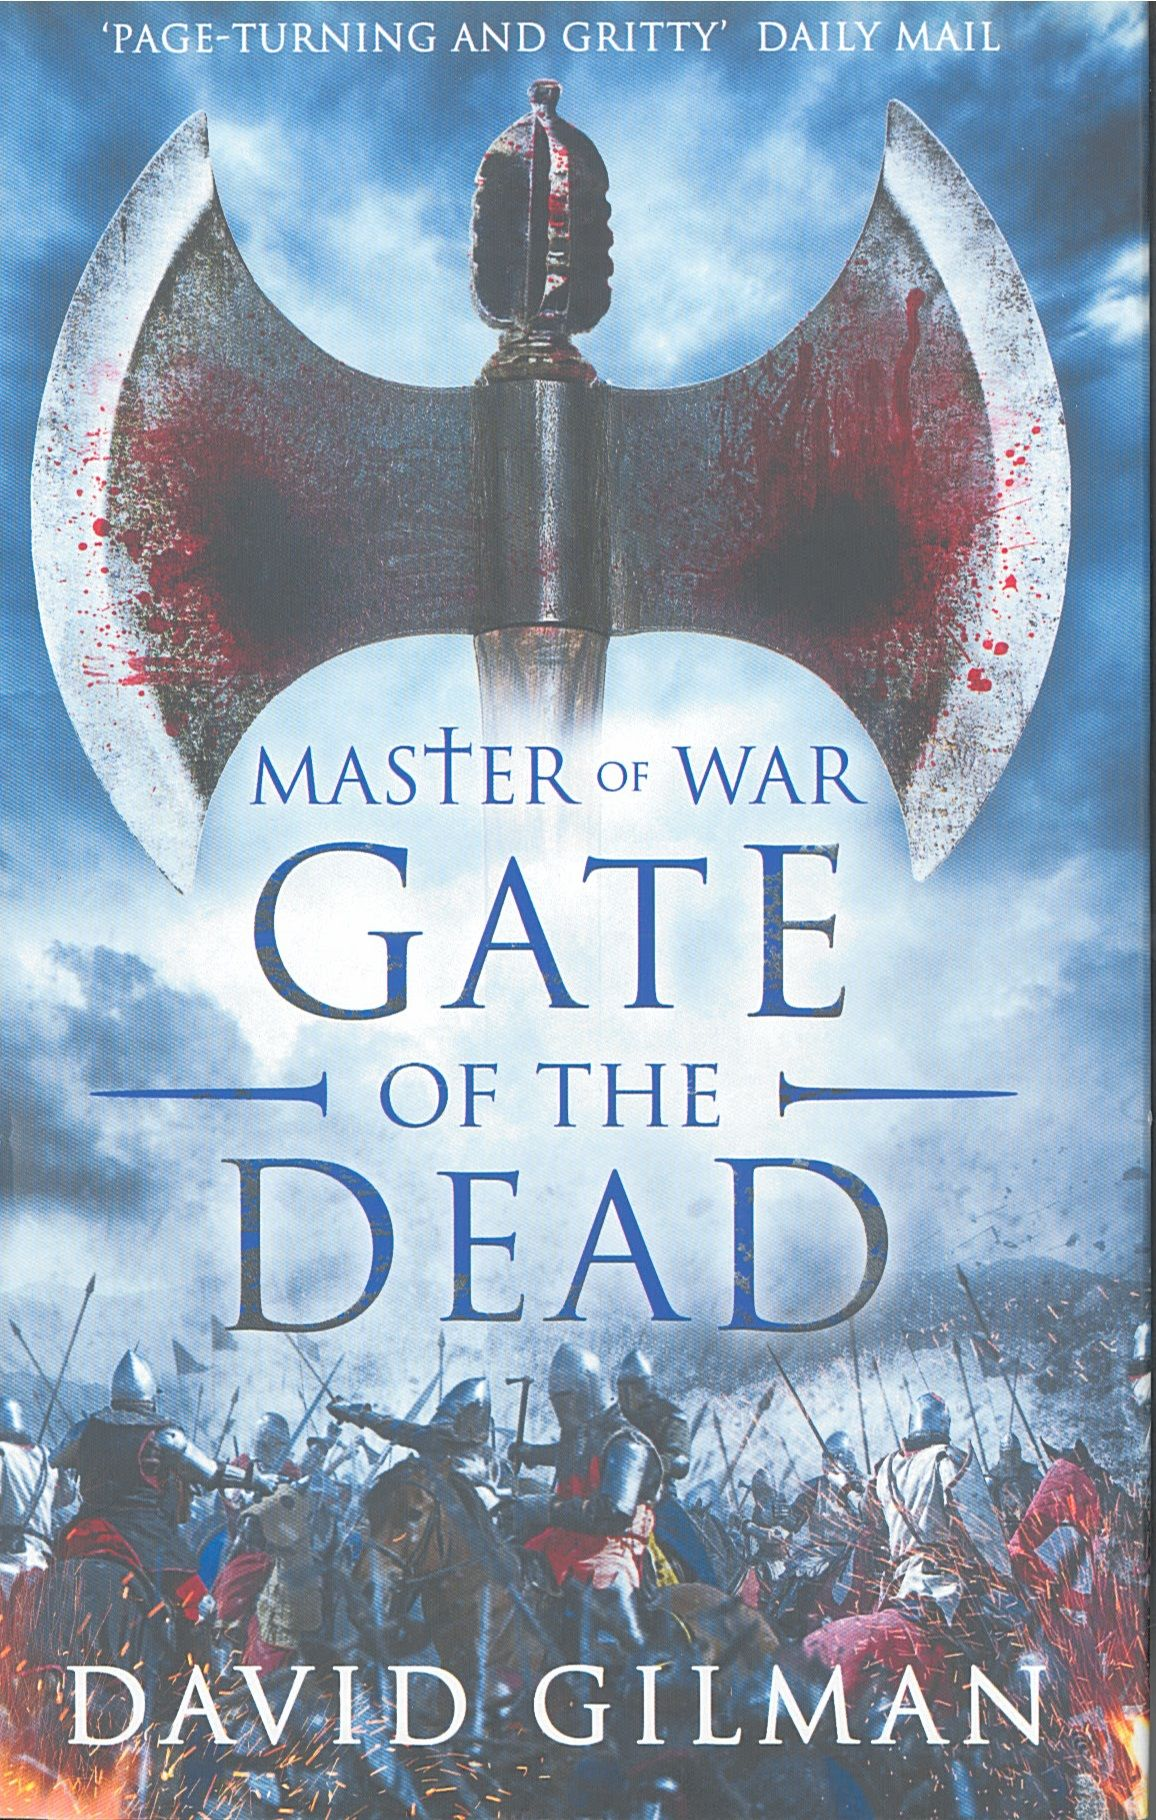 GATE OF THE DEAD's cover, written by David Gilman and